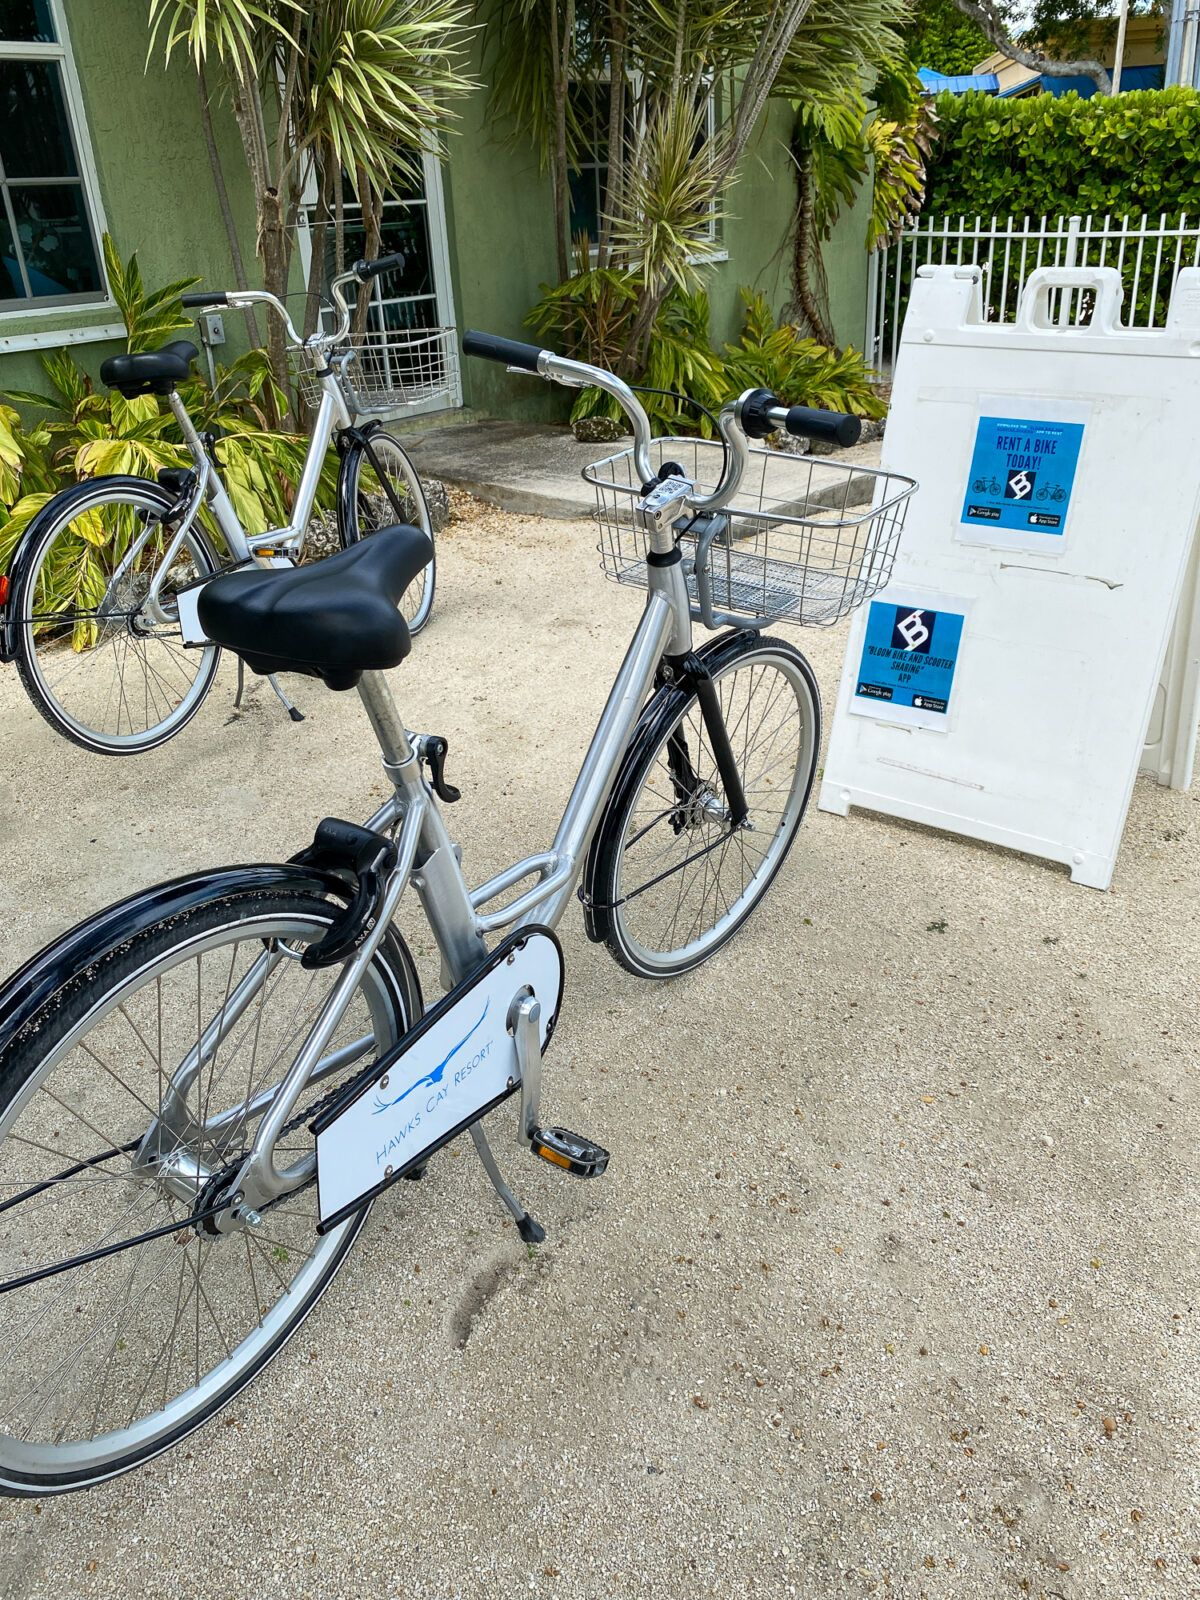 Bicycles for rent on Duck Key in the Florida Keys